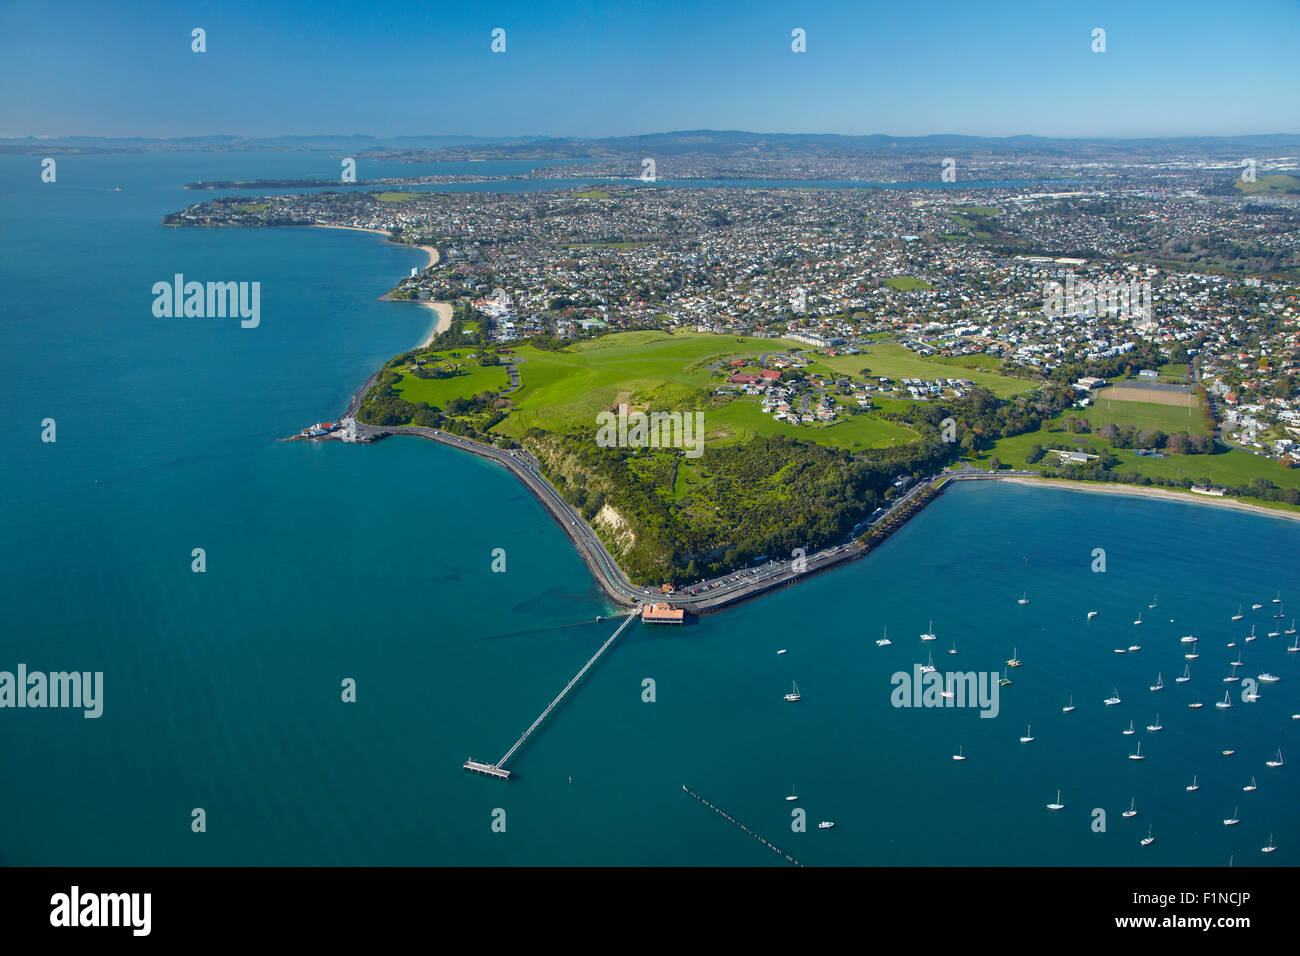 Orakei Wharf and Bastion Point, Auckland, North Island, New Zealand - aerial - Stock Image